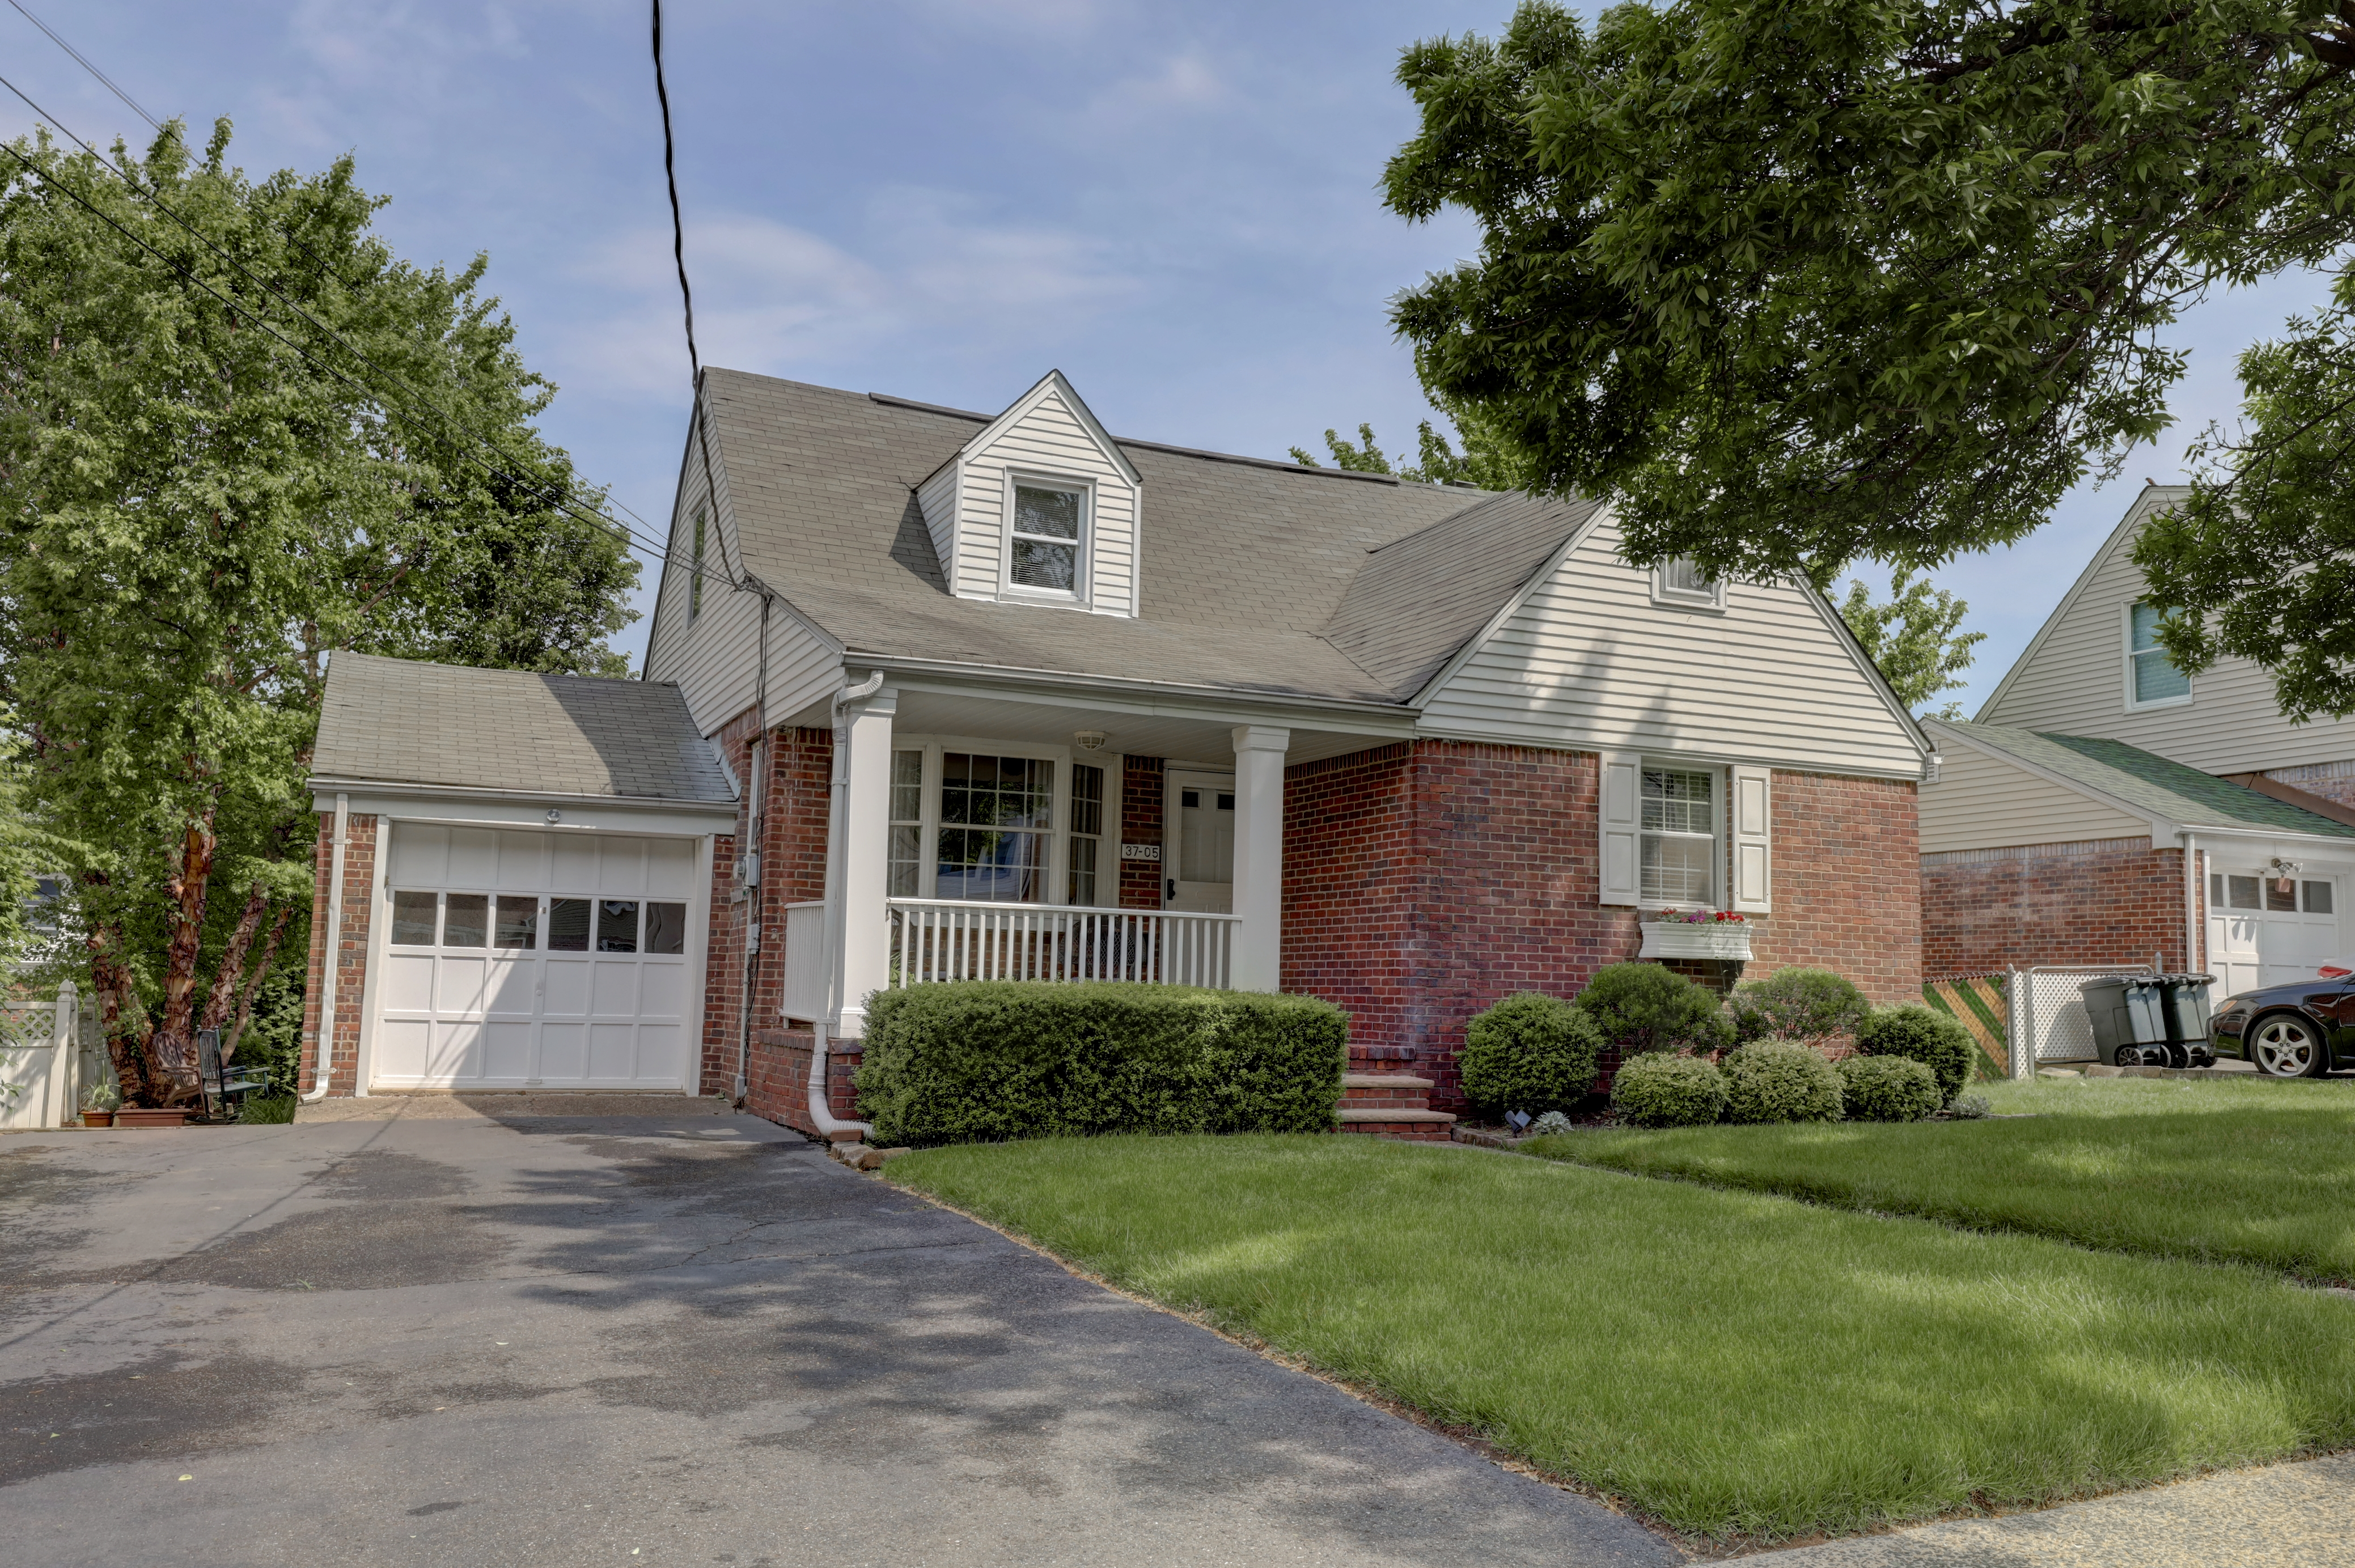 37-05 Ferry Heights, Fair Lawn